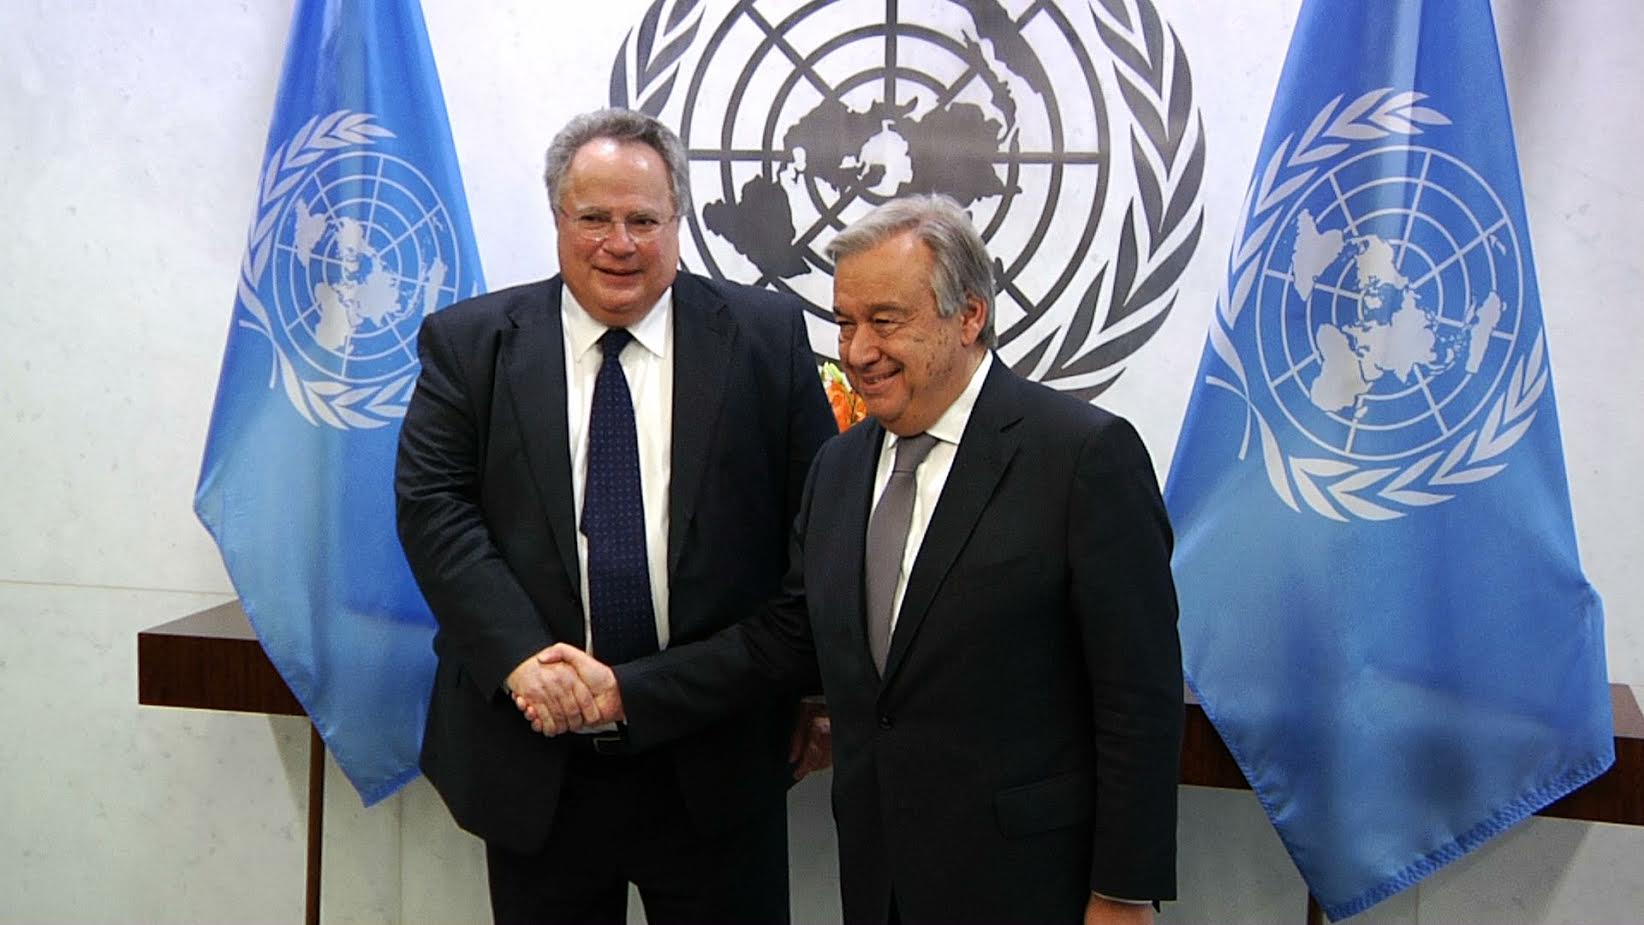 Great Britain sabotaged the document with SG's proposals in Crans-Montana, says N. Kotzias